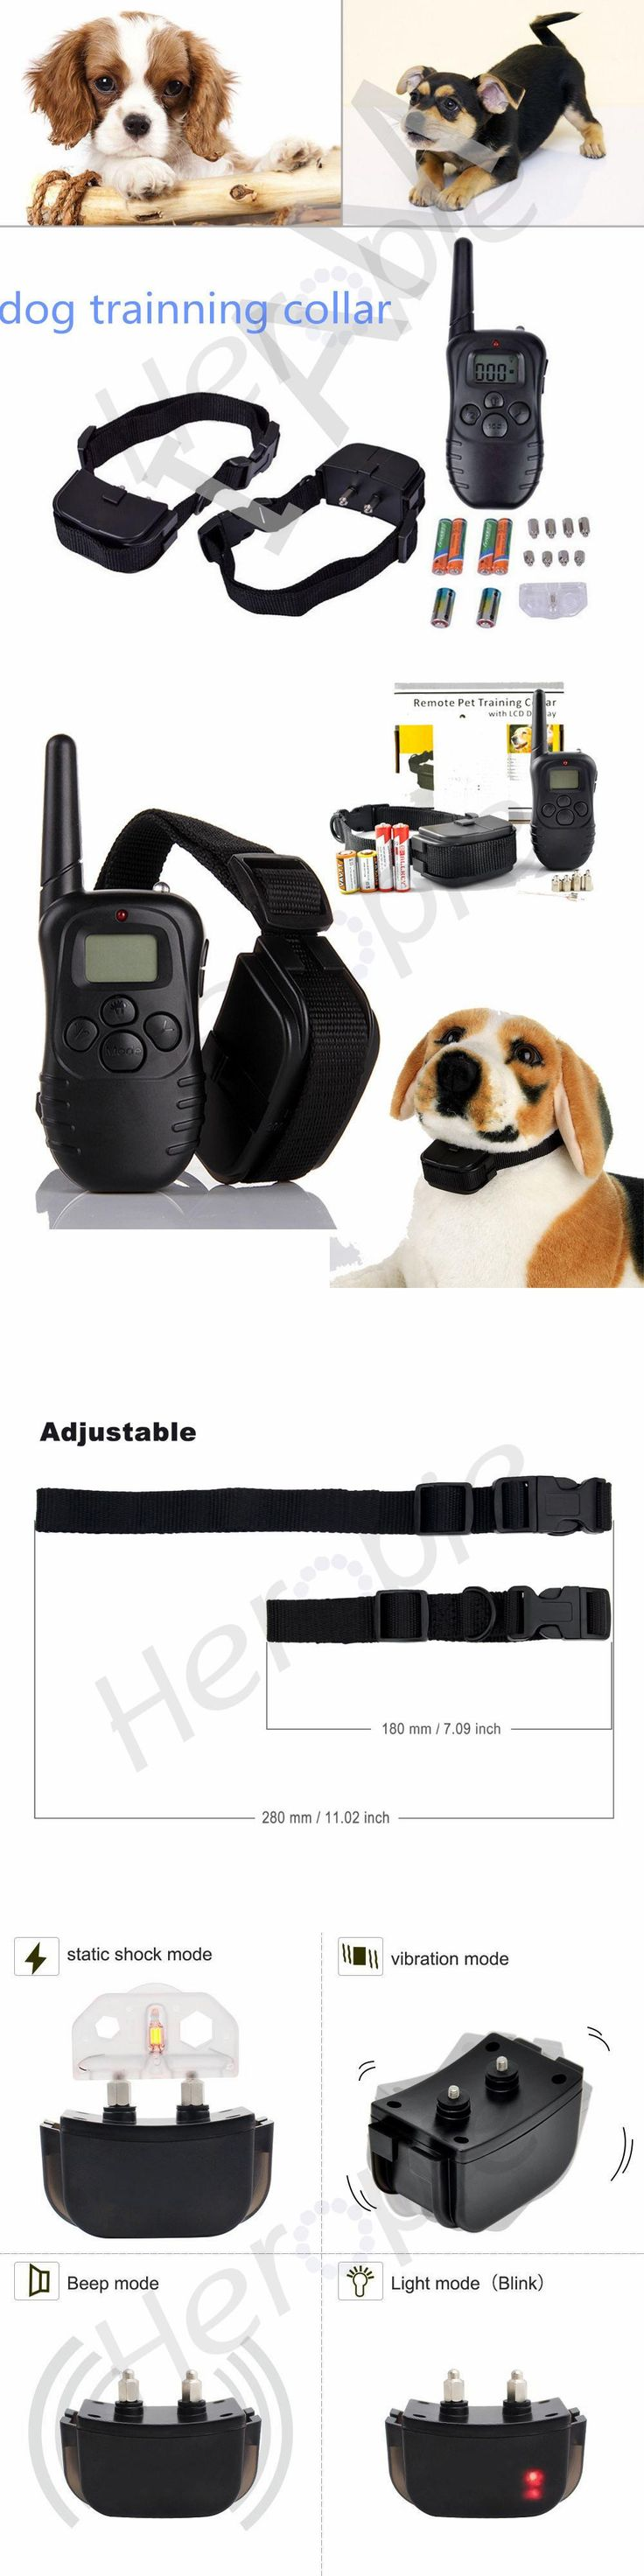 300 Meters 100LV Remote Electric Shock Anti-bark Vibra Pet Training Collar Control Trainer Aids With LCD Display For 1 or 2 Dogs